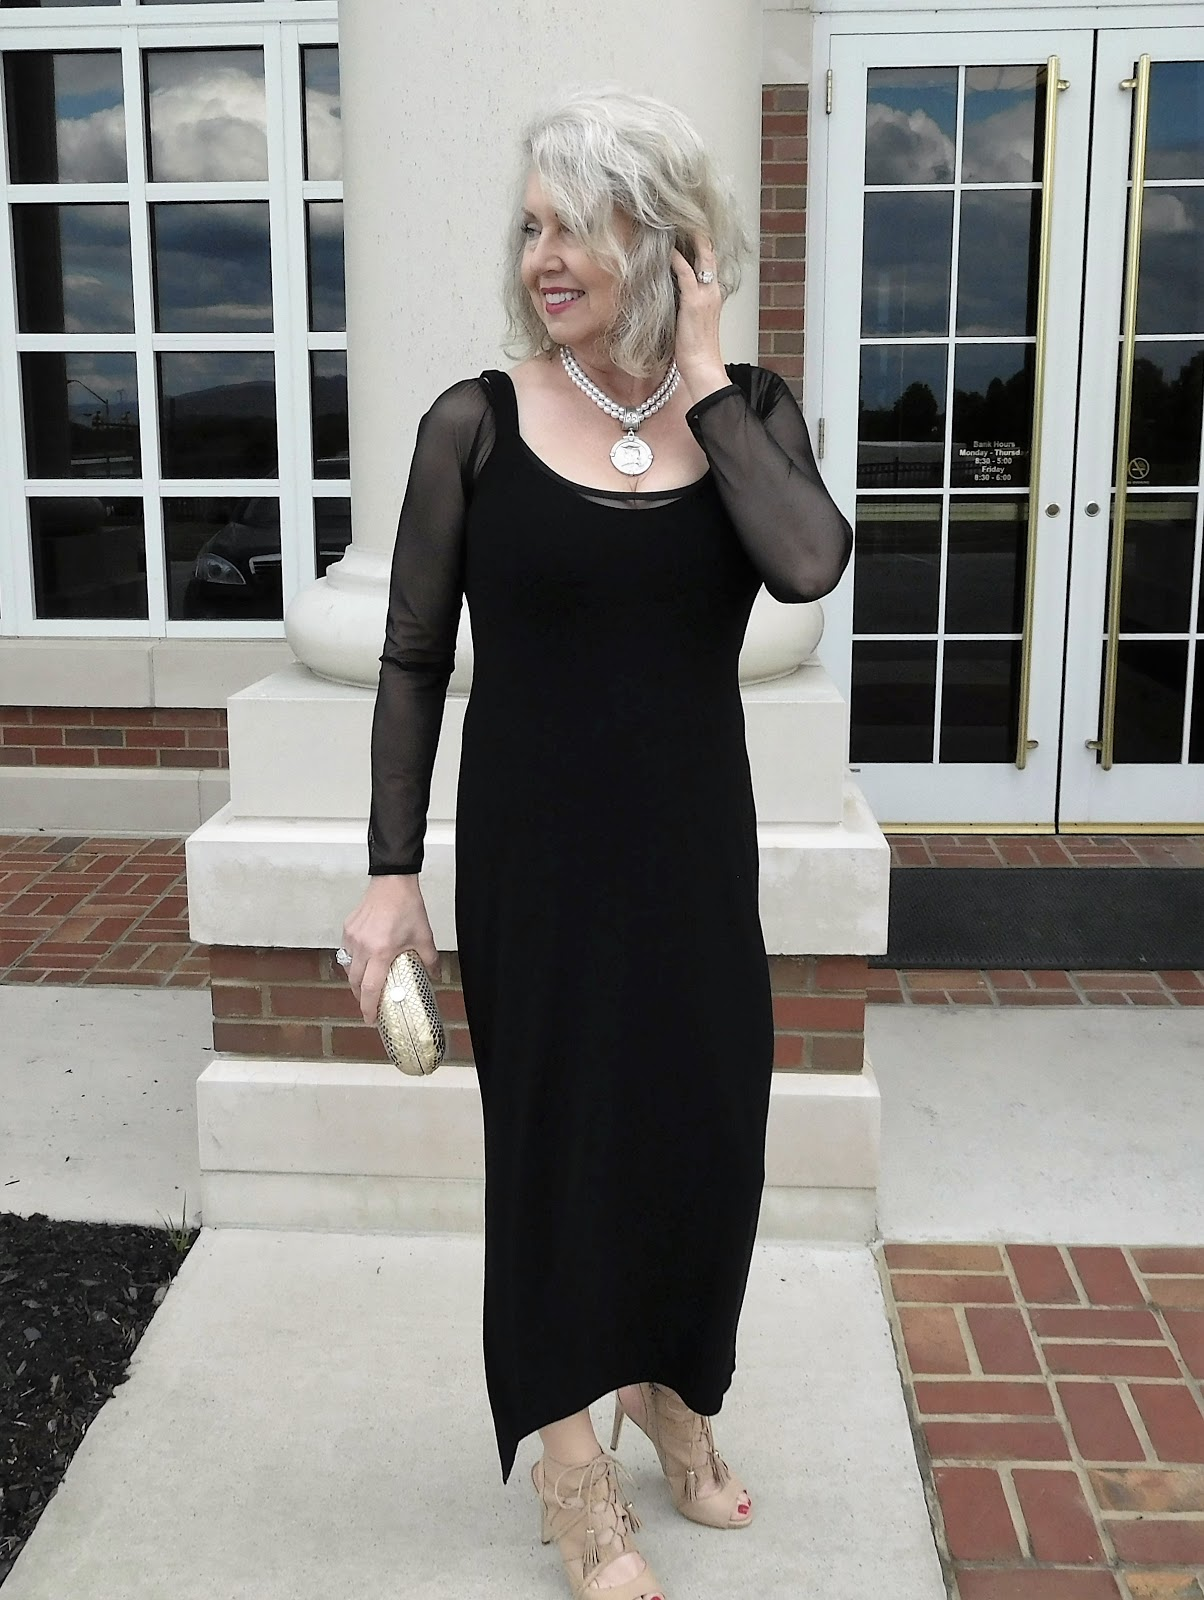 Fifty, not Frumpy: If Only It Had Sleeves Part II